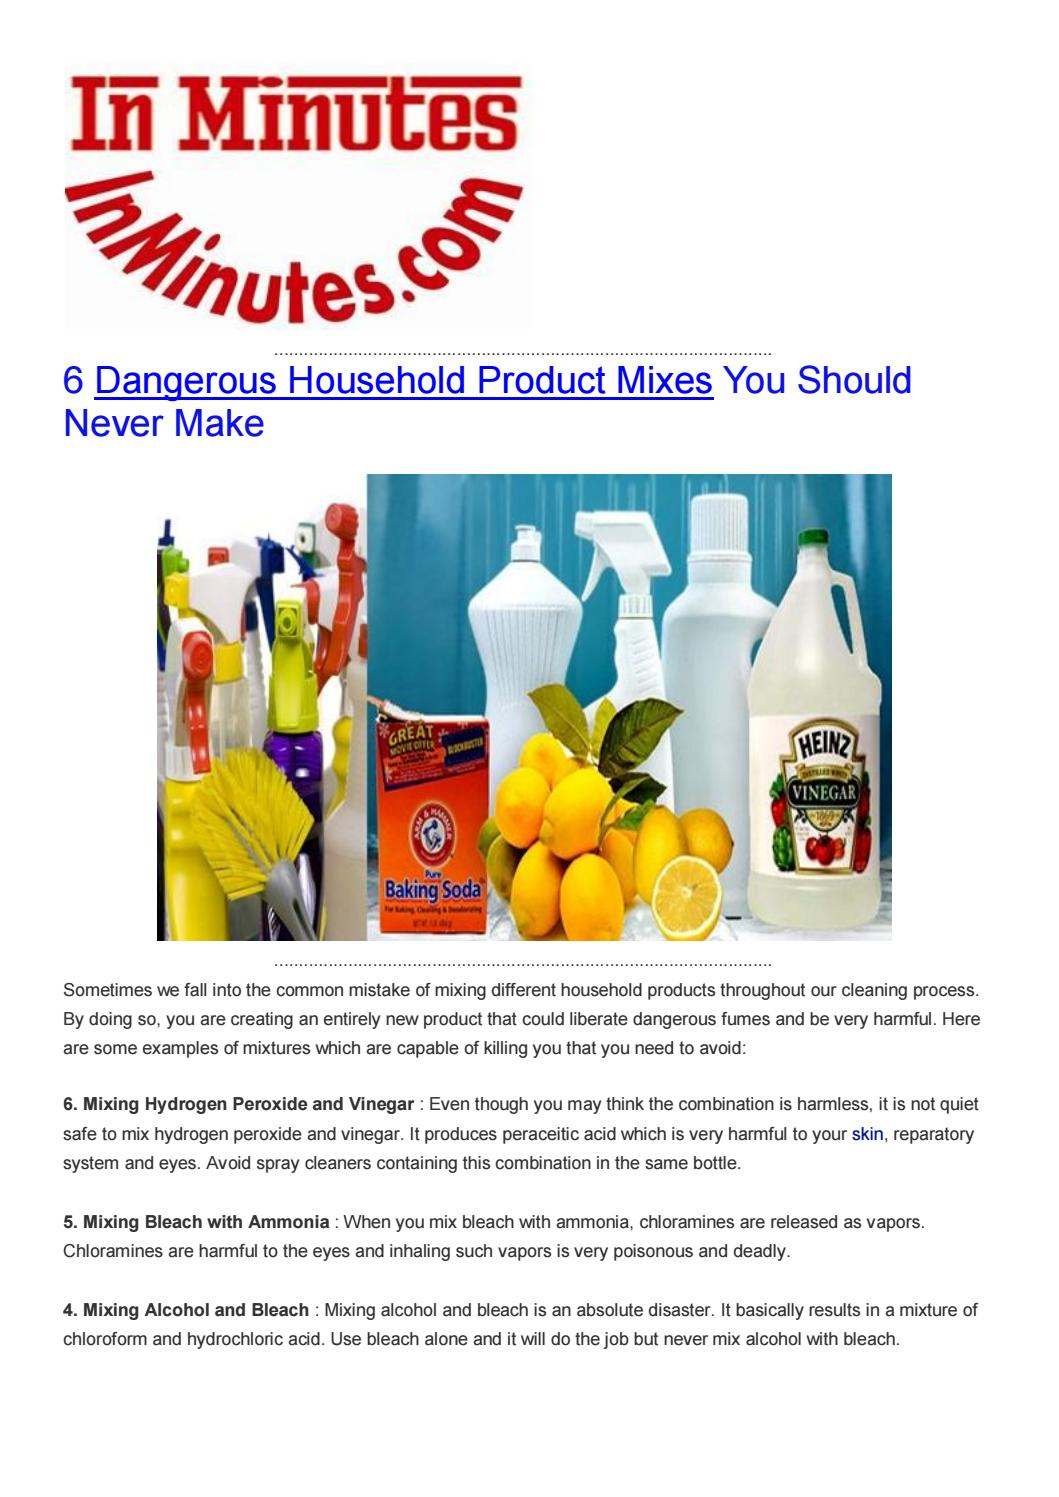 6 Dangerous Household Product Mixes You Should Never Make By Health